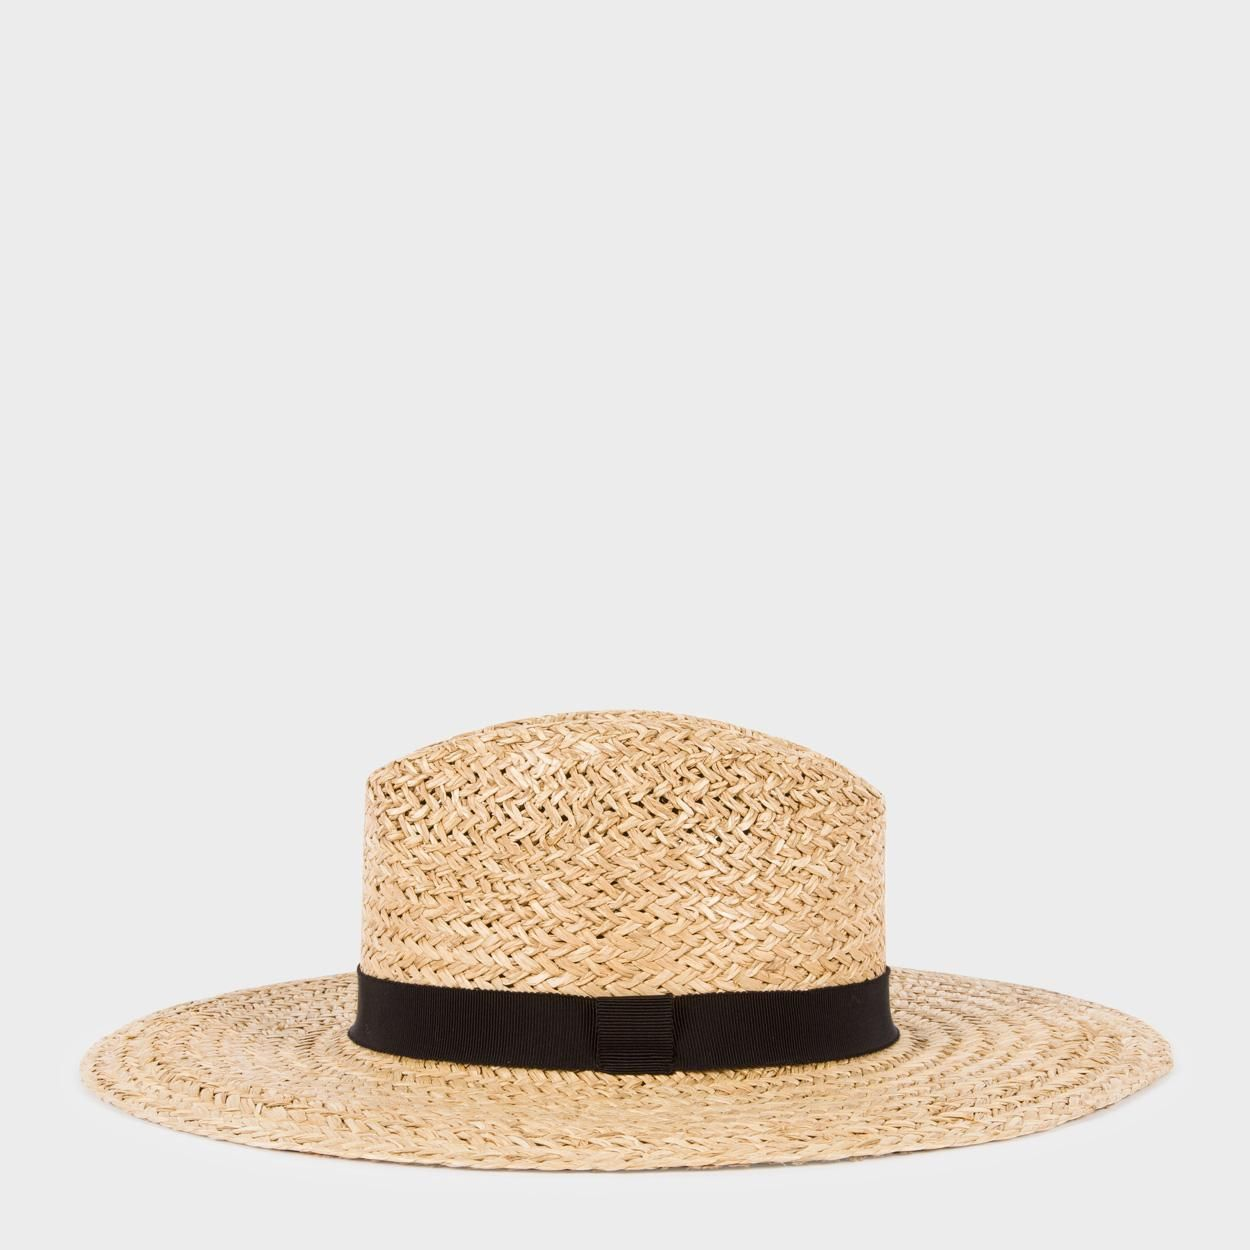 813f45912d486c Paul Smith Women's Taupe Open-Weave Straw Hat on ShopStyle ...